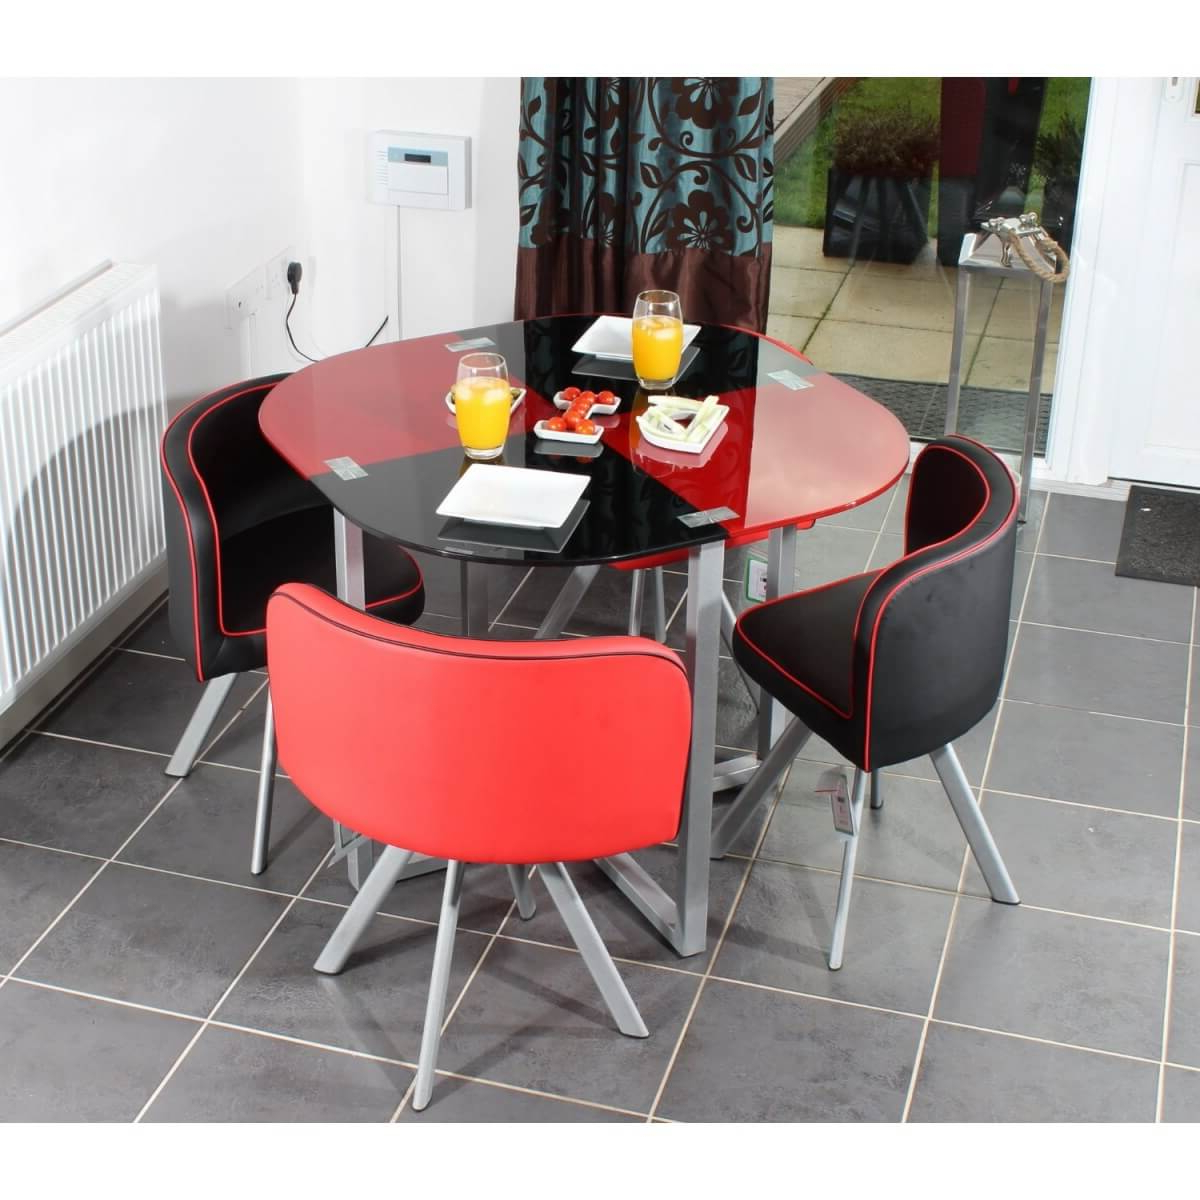 Retro Round Glasstop Dining Tables Throughout Most Current Round Red And Black Glossy Dining Table Addedthree Retro (View 12 of 30)